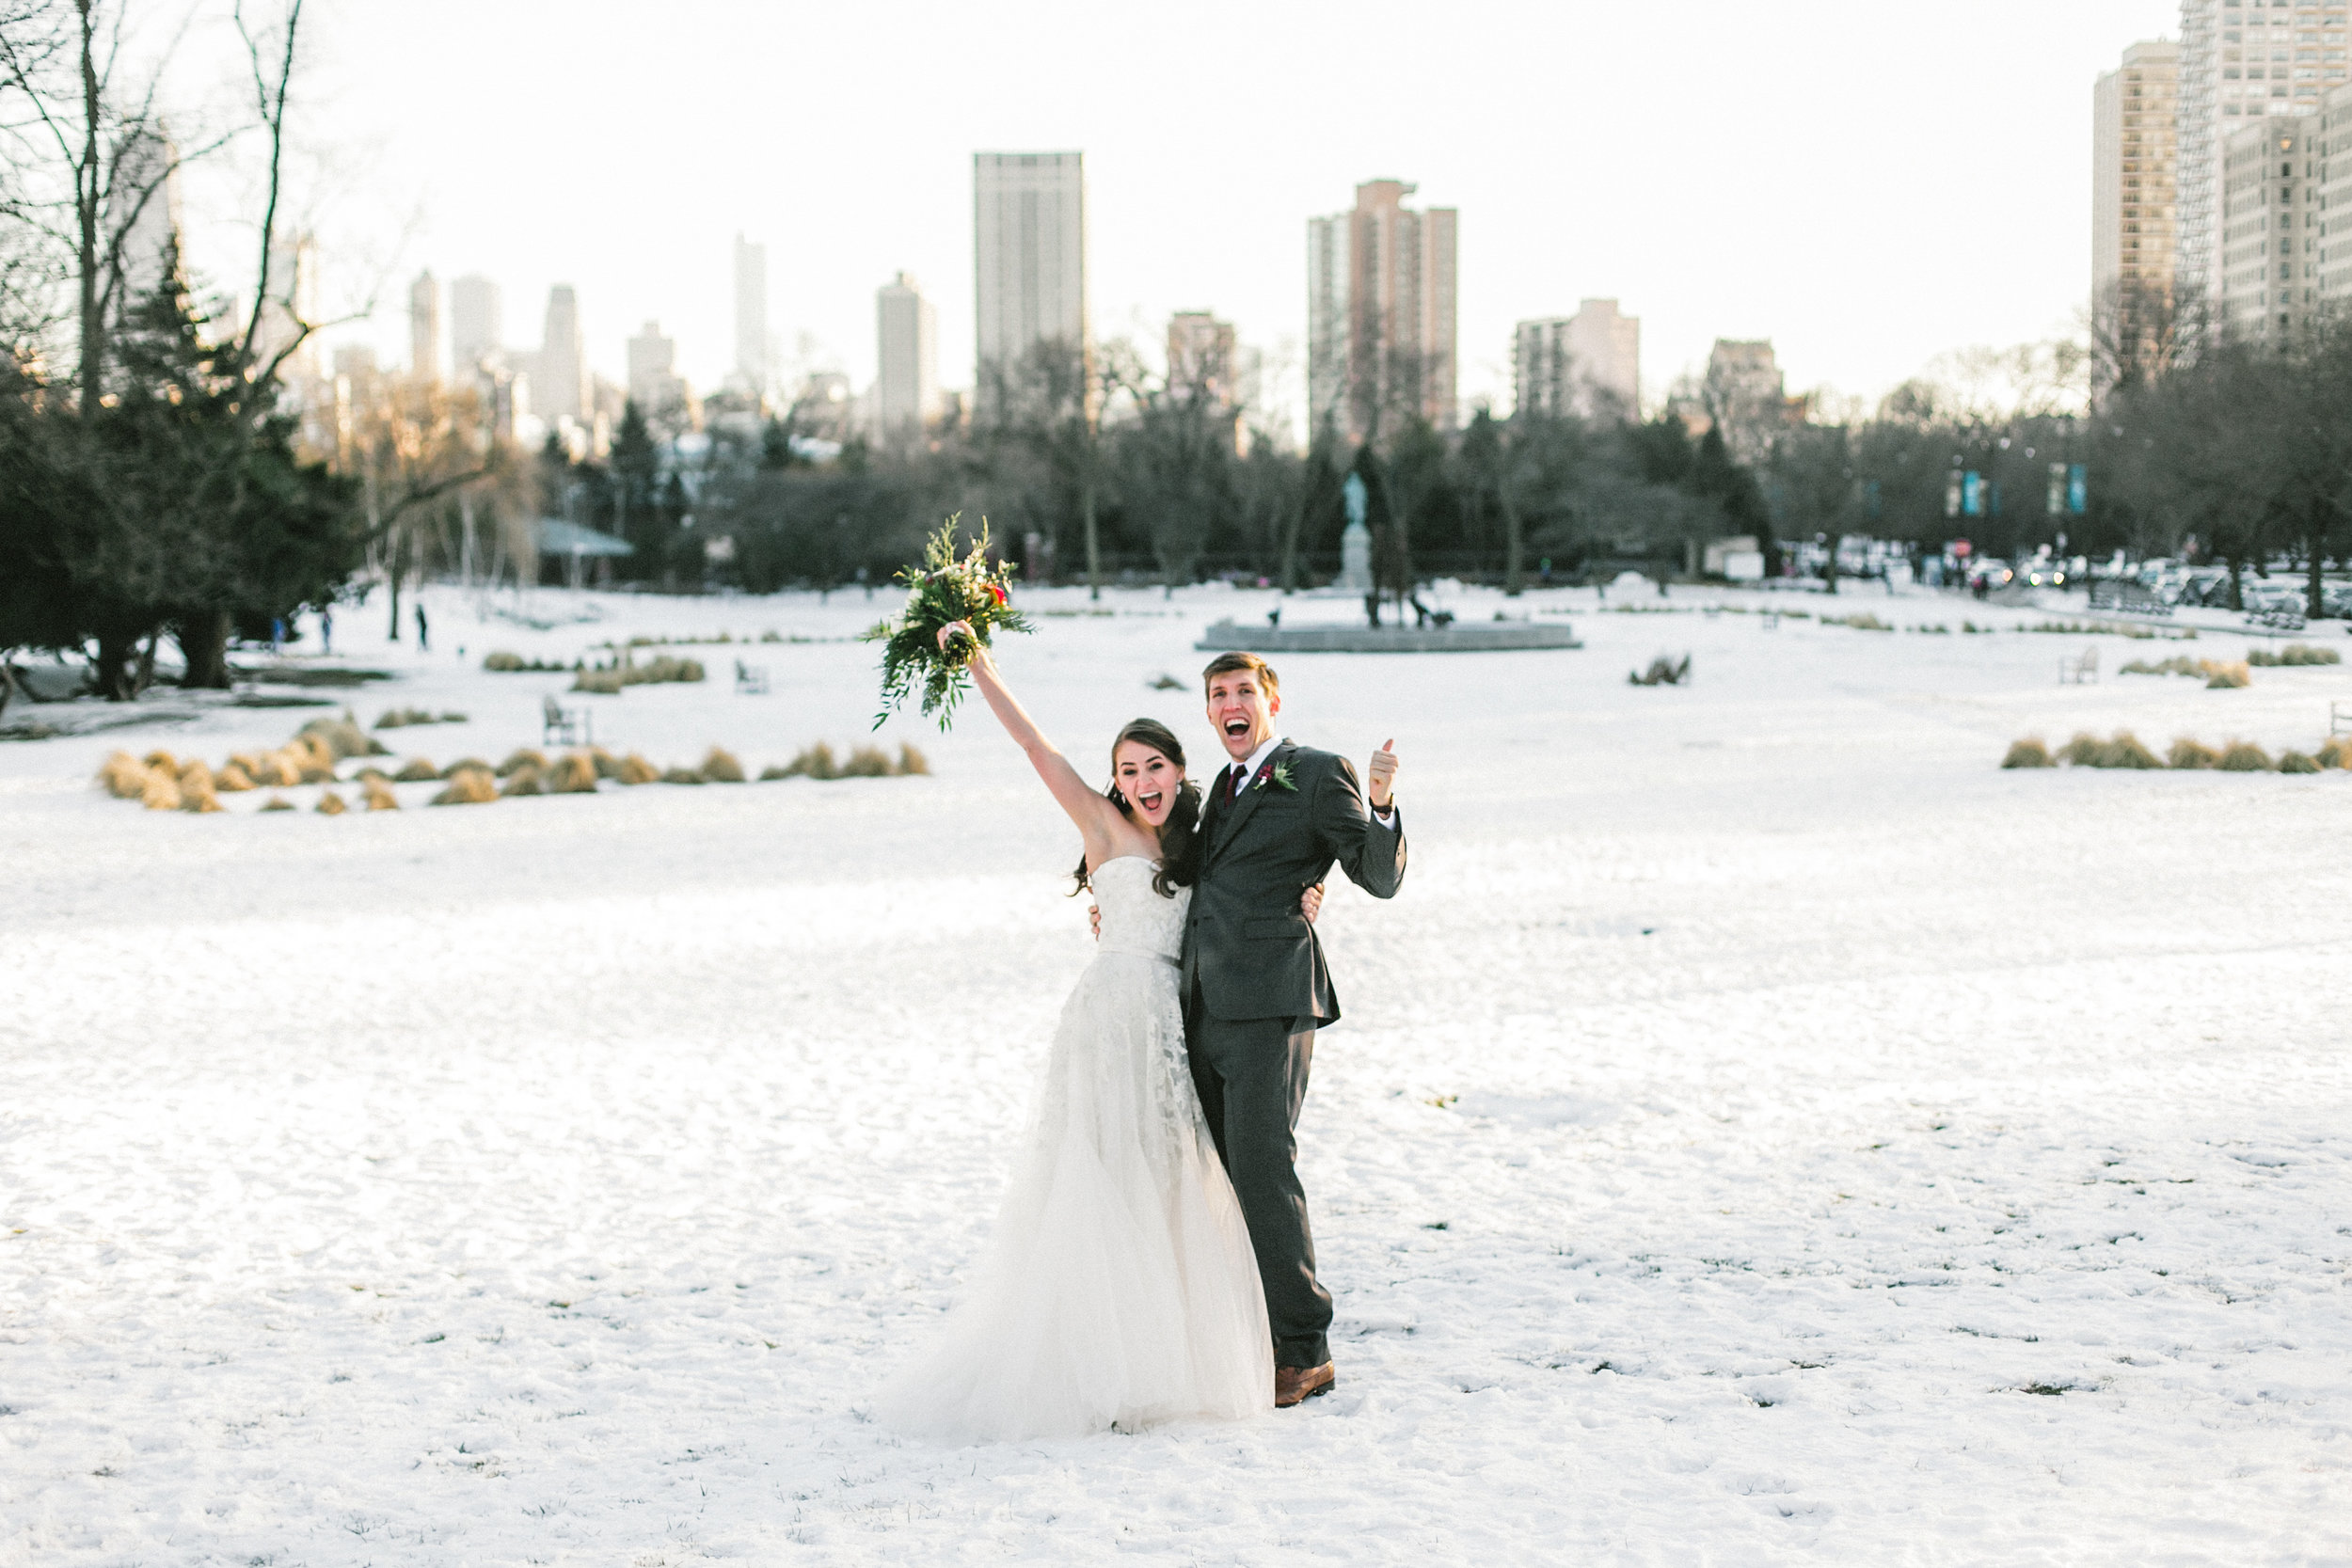 Winter Snowy Wedding